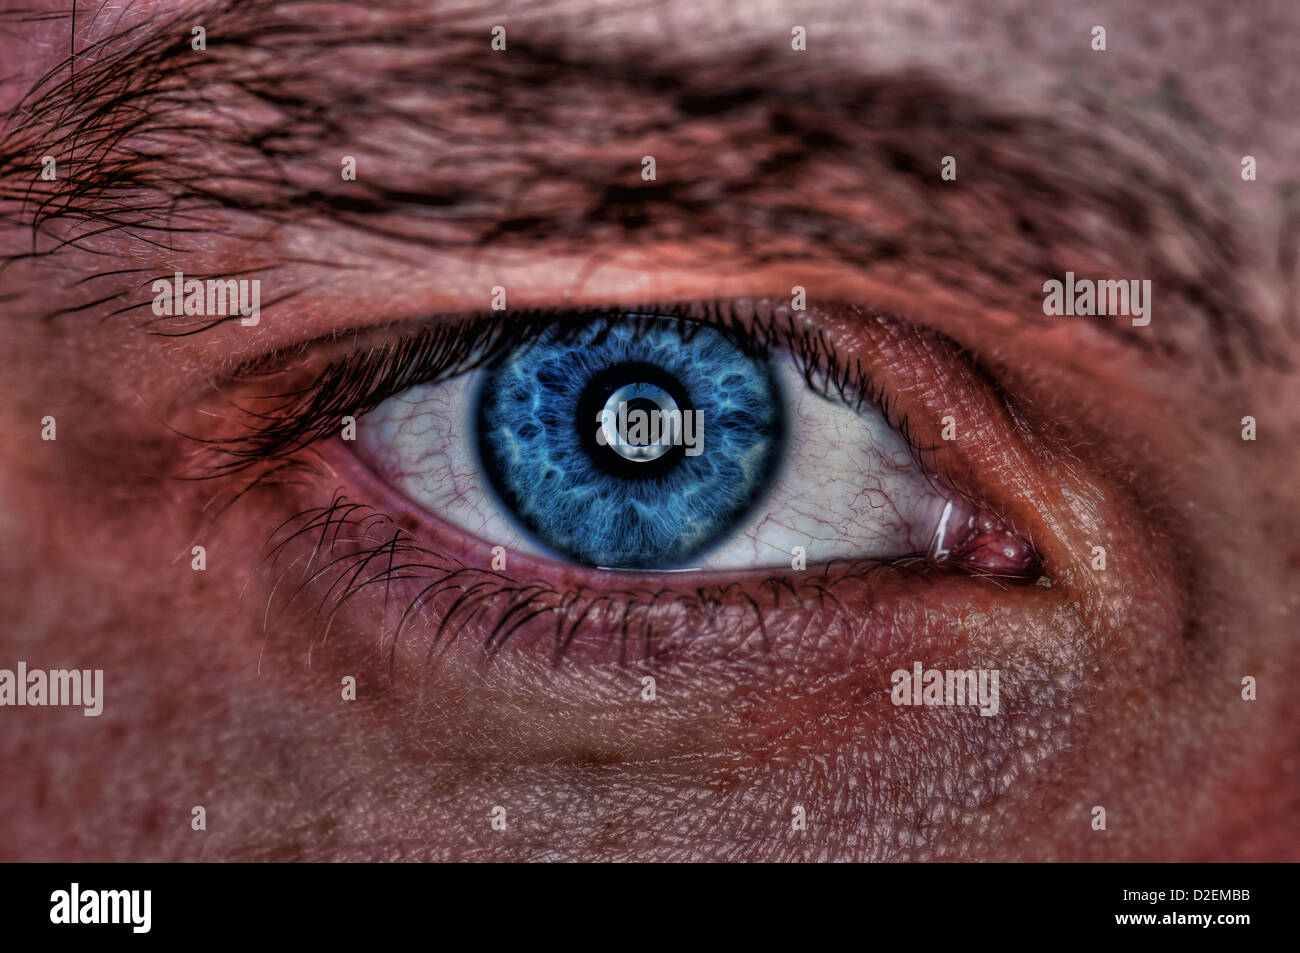 Extreme closeup of a human eye - blue - Stock Image